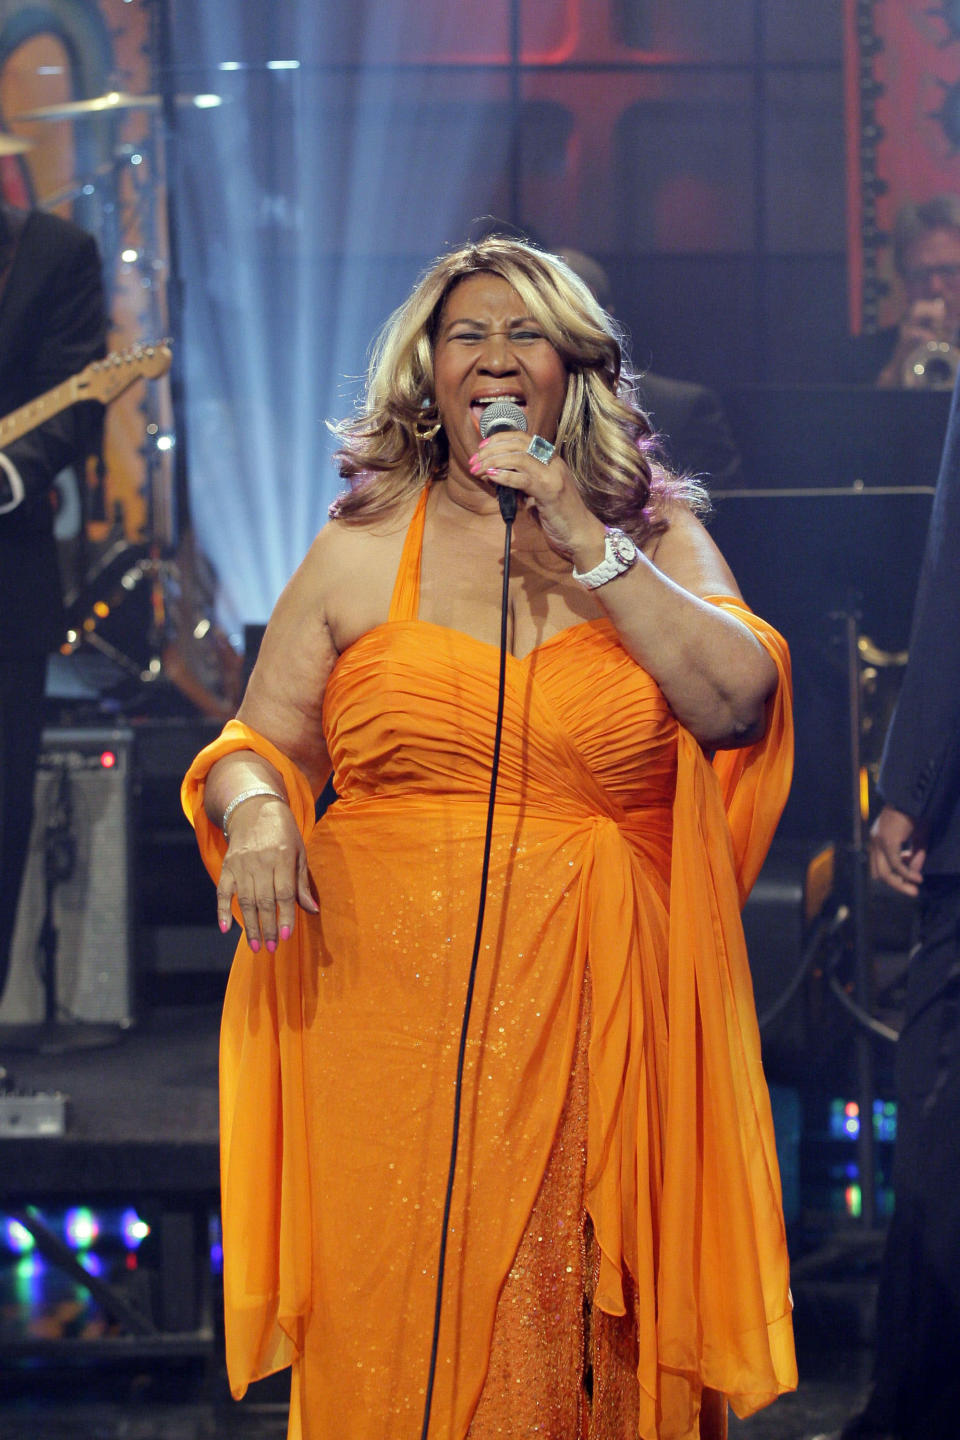 """<p>Aretha Franklin wears an orange ruched halter sequin dress and bright blond hair during a performance on """"The Tonight Show with Jay Leno."""" (Photo by: Stacie McChesney/NBC/NBCU Photo Bank) </p>"""